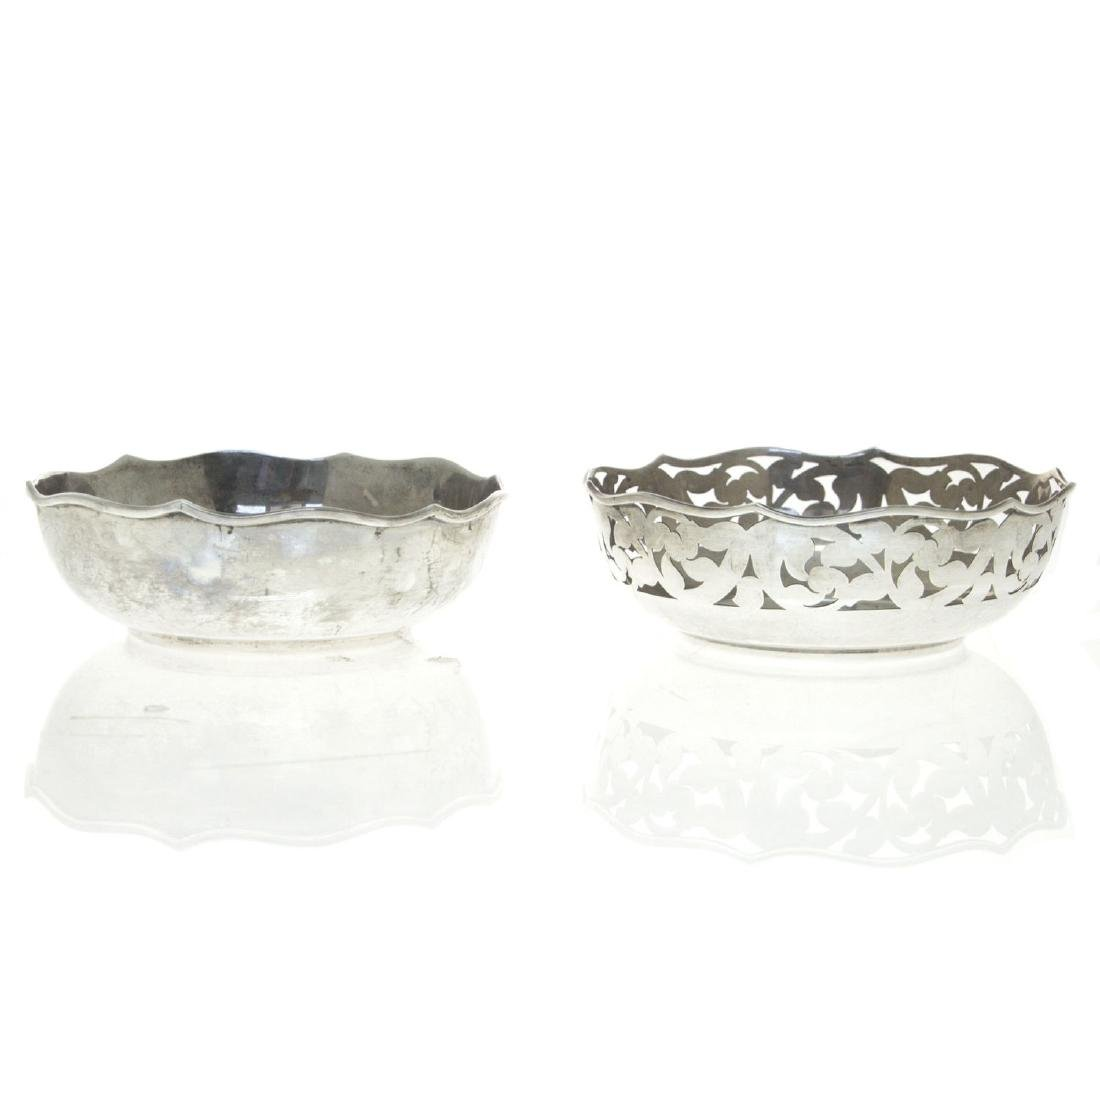 Two Silver Bowls.